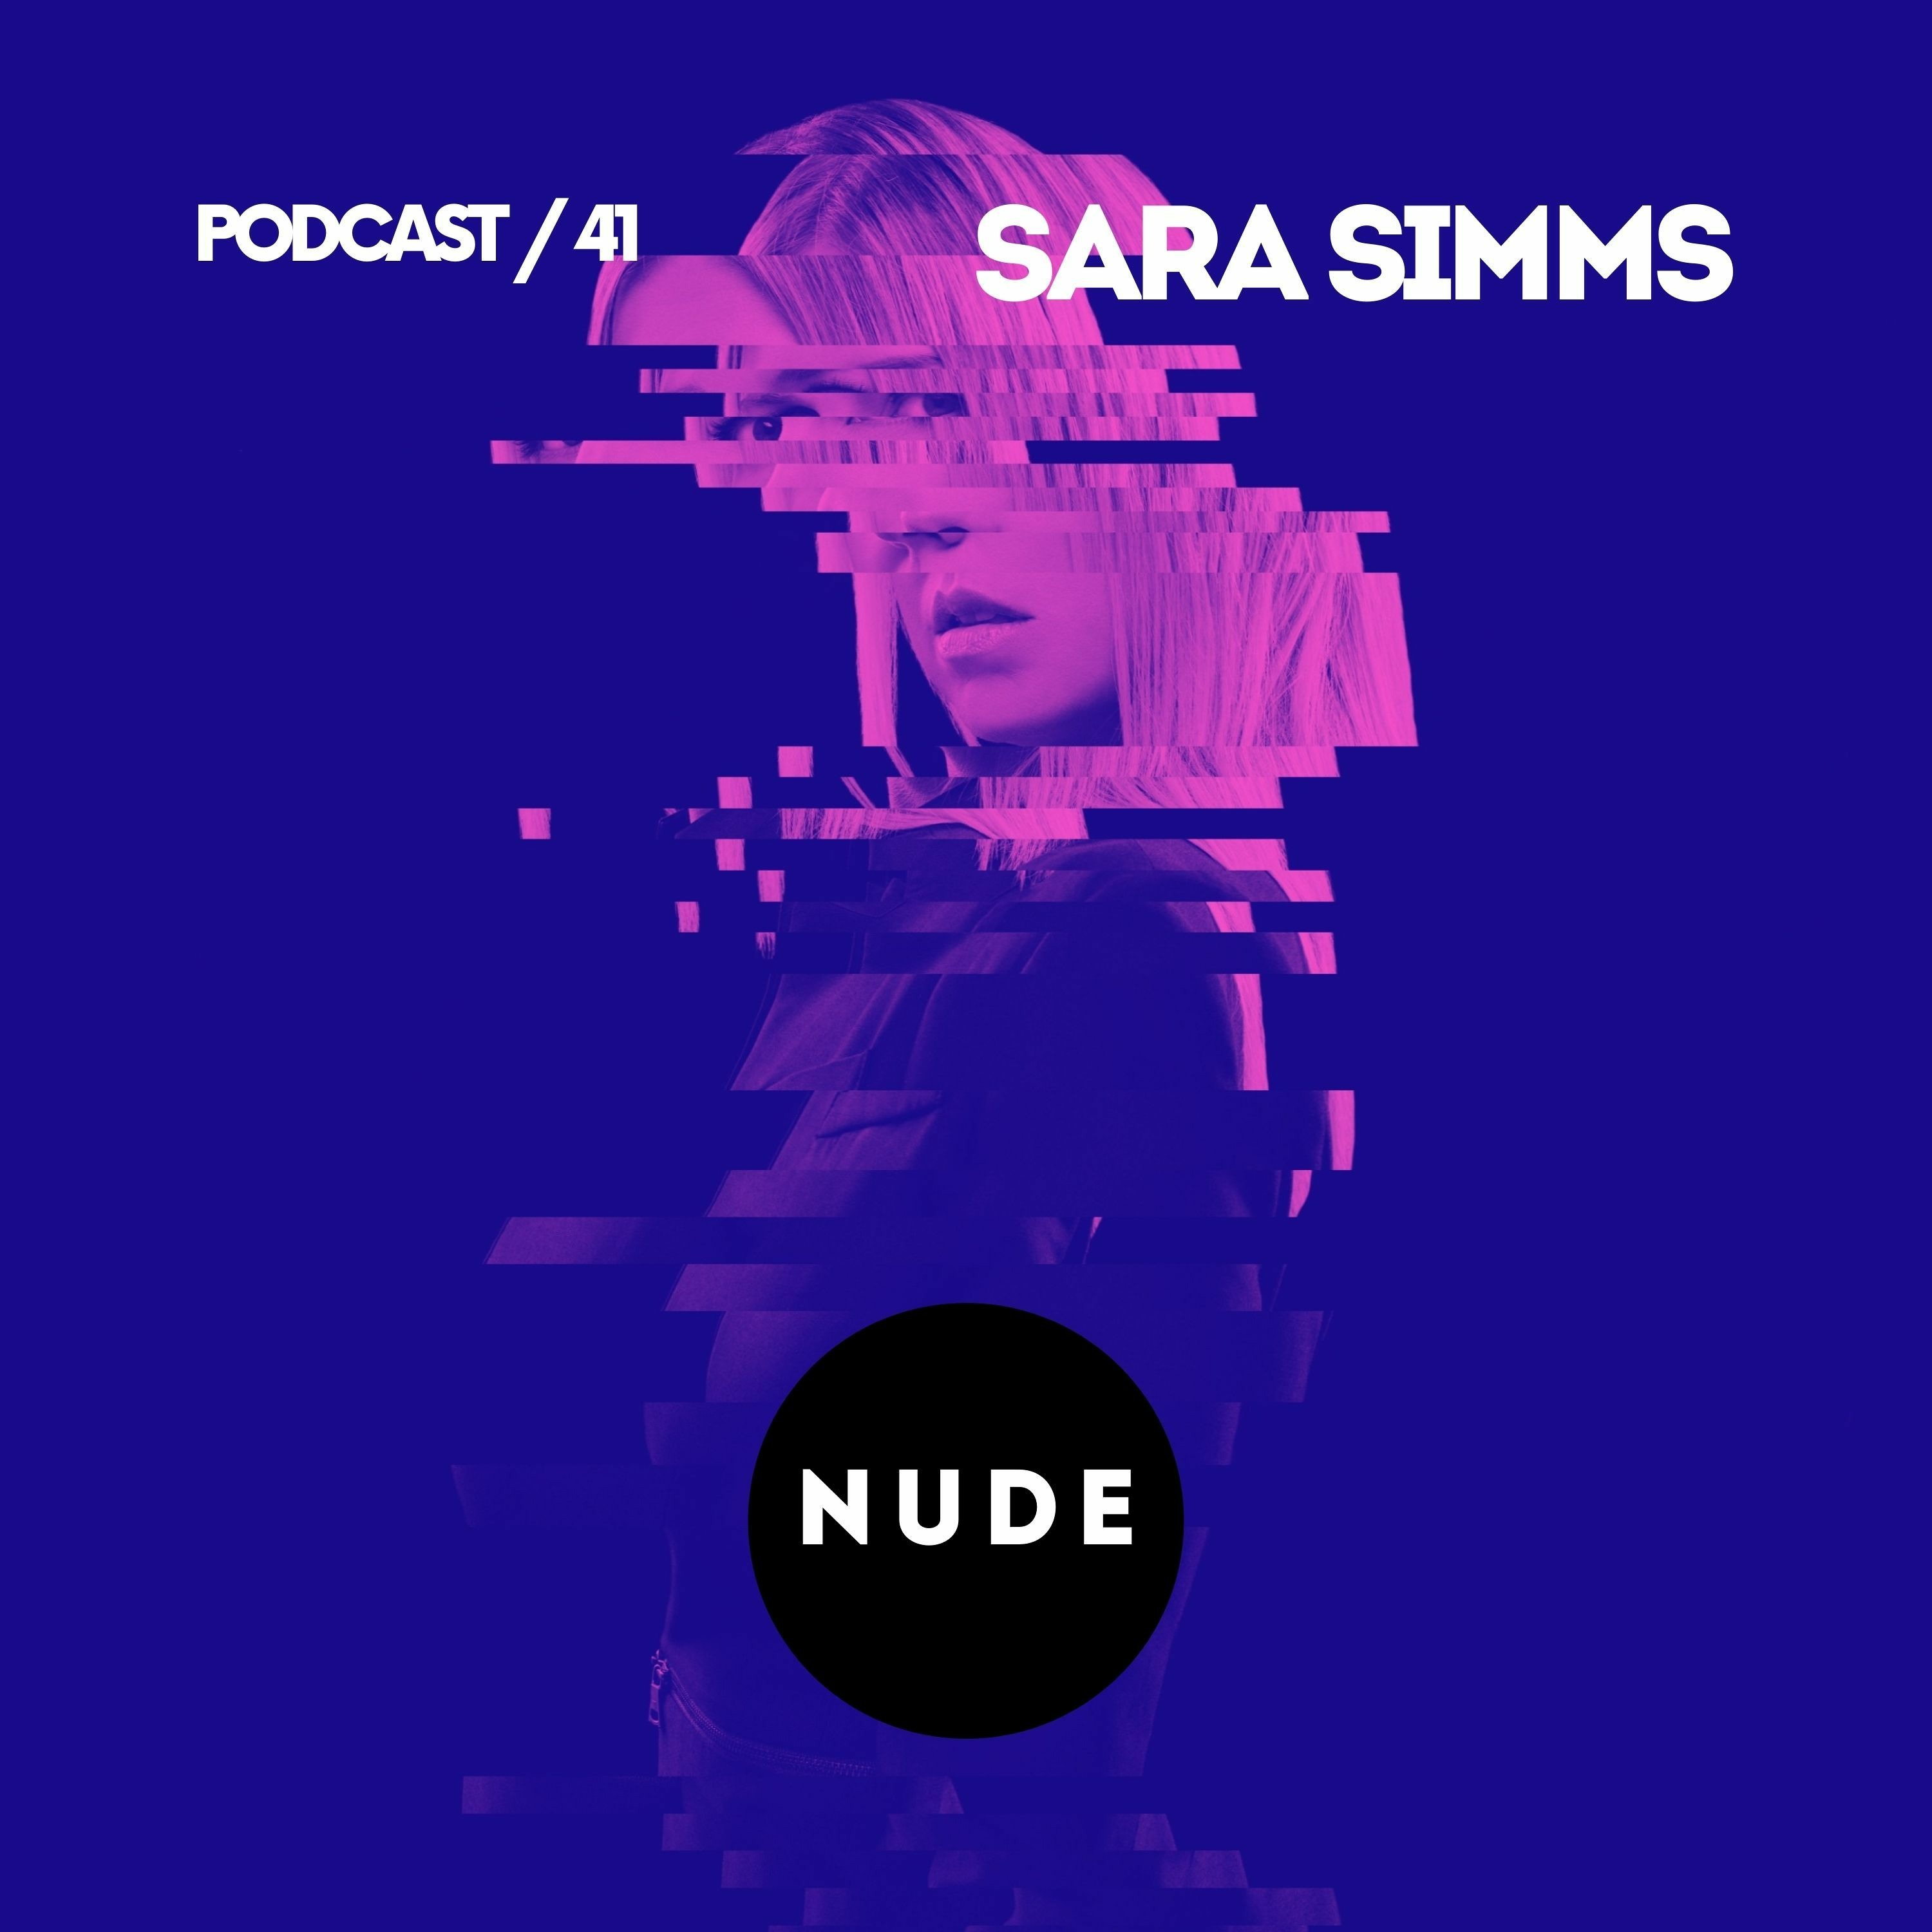 NUDE TECHNO PODCAST